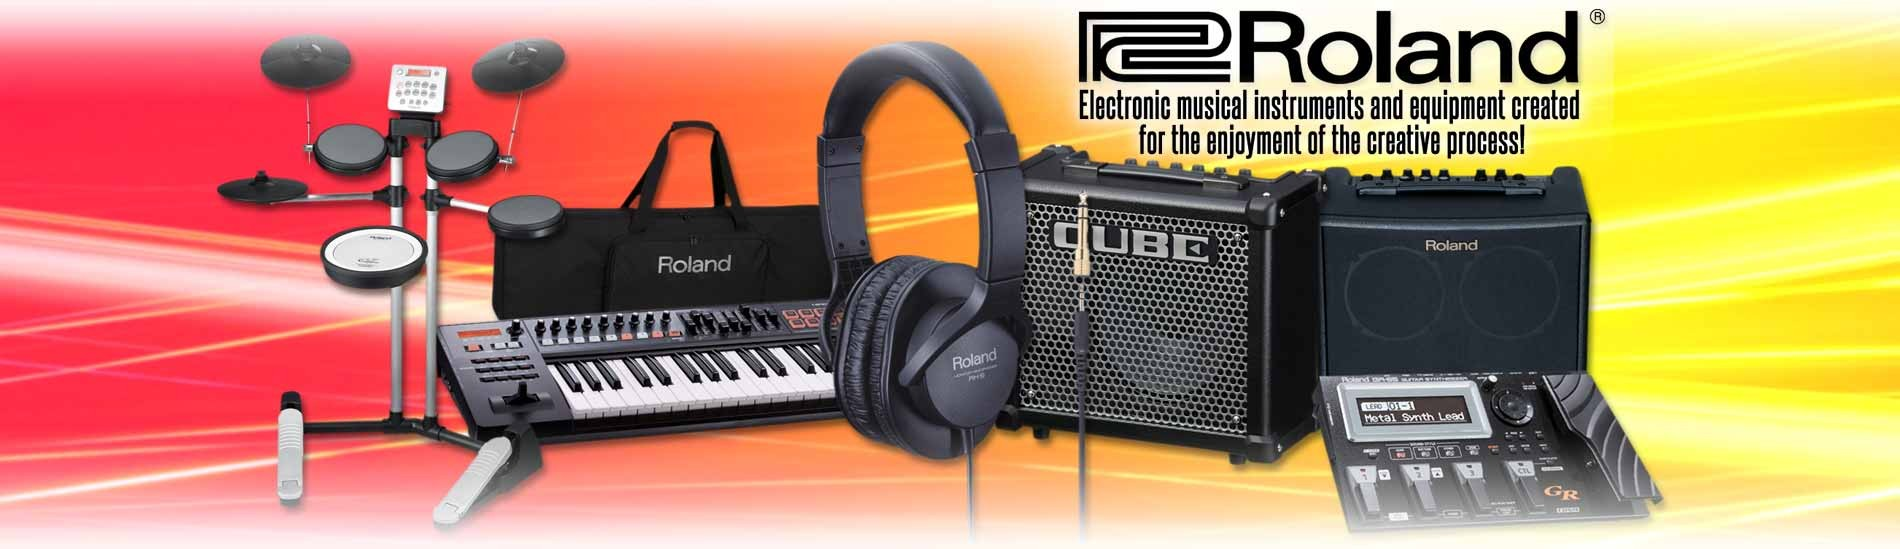 Roland - Electronic musical instruments and equipments